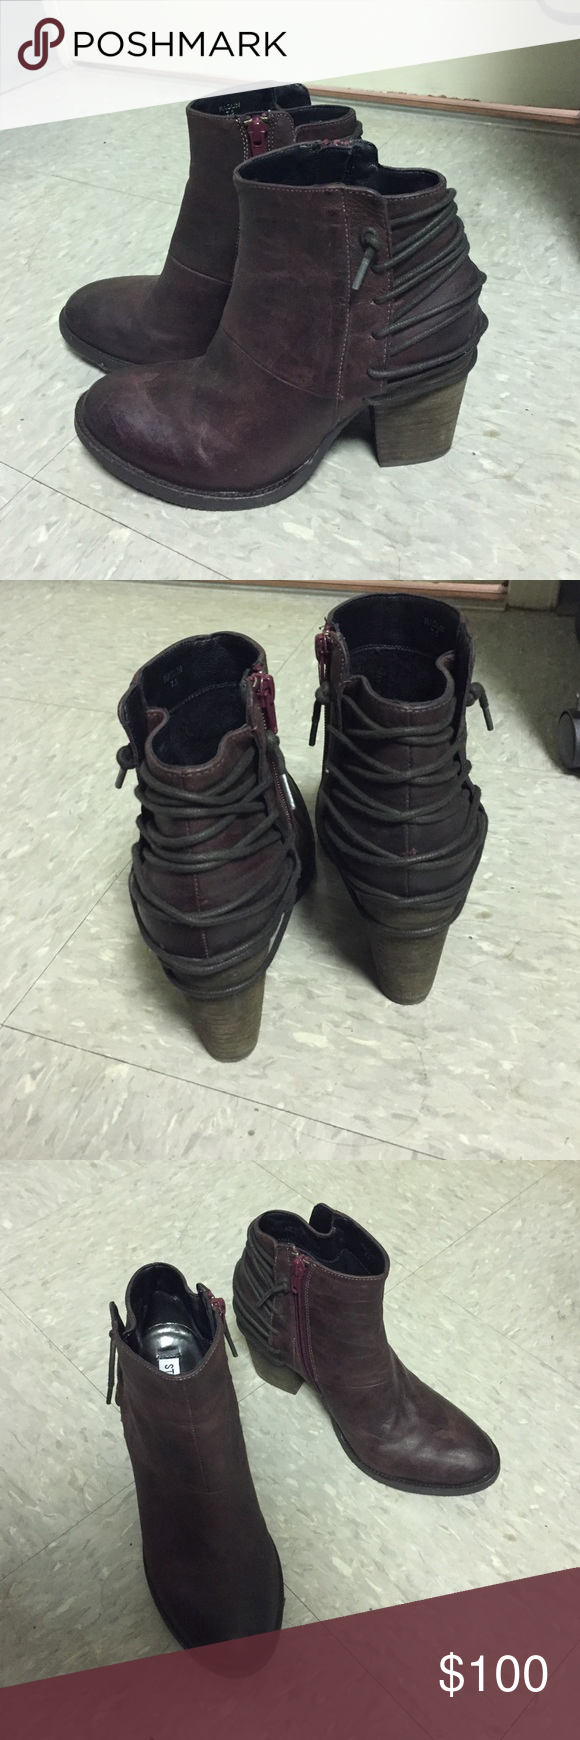 """Steve Madden booties Really cute Steve Madden booties! Nice dark plum/burgundy color -- great for fall and winter! Only worn to dinner twice. Cute lace up on back. In excellent condition just too big for me so got a new pair in my size. This is the """"Raglin"""" bootie. Steve Madden Shoes Ankle Boots & Booties"""